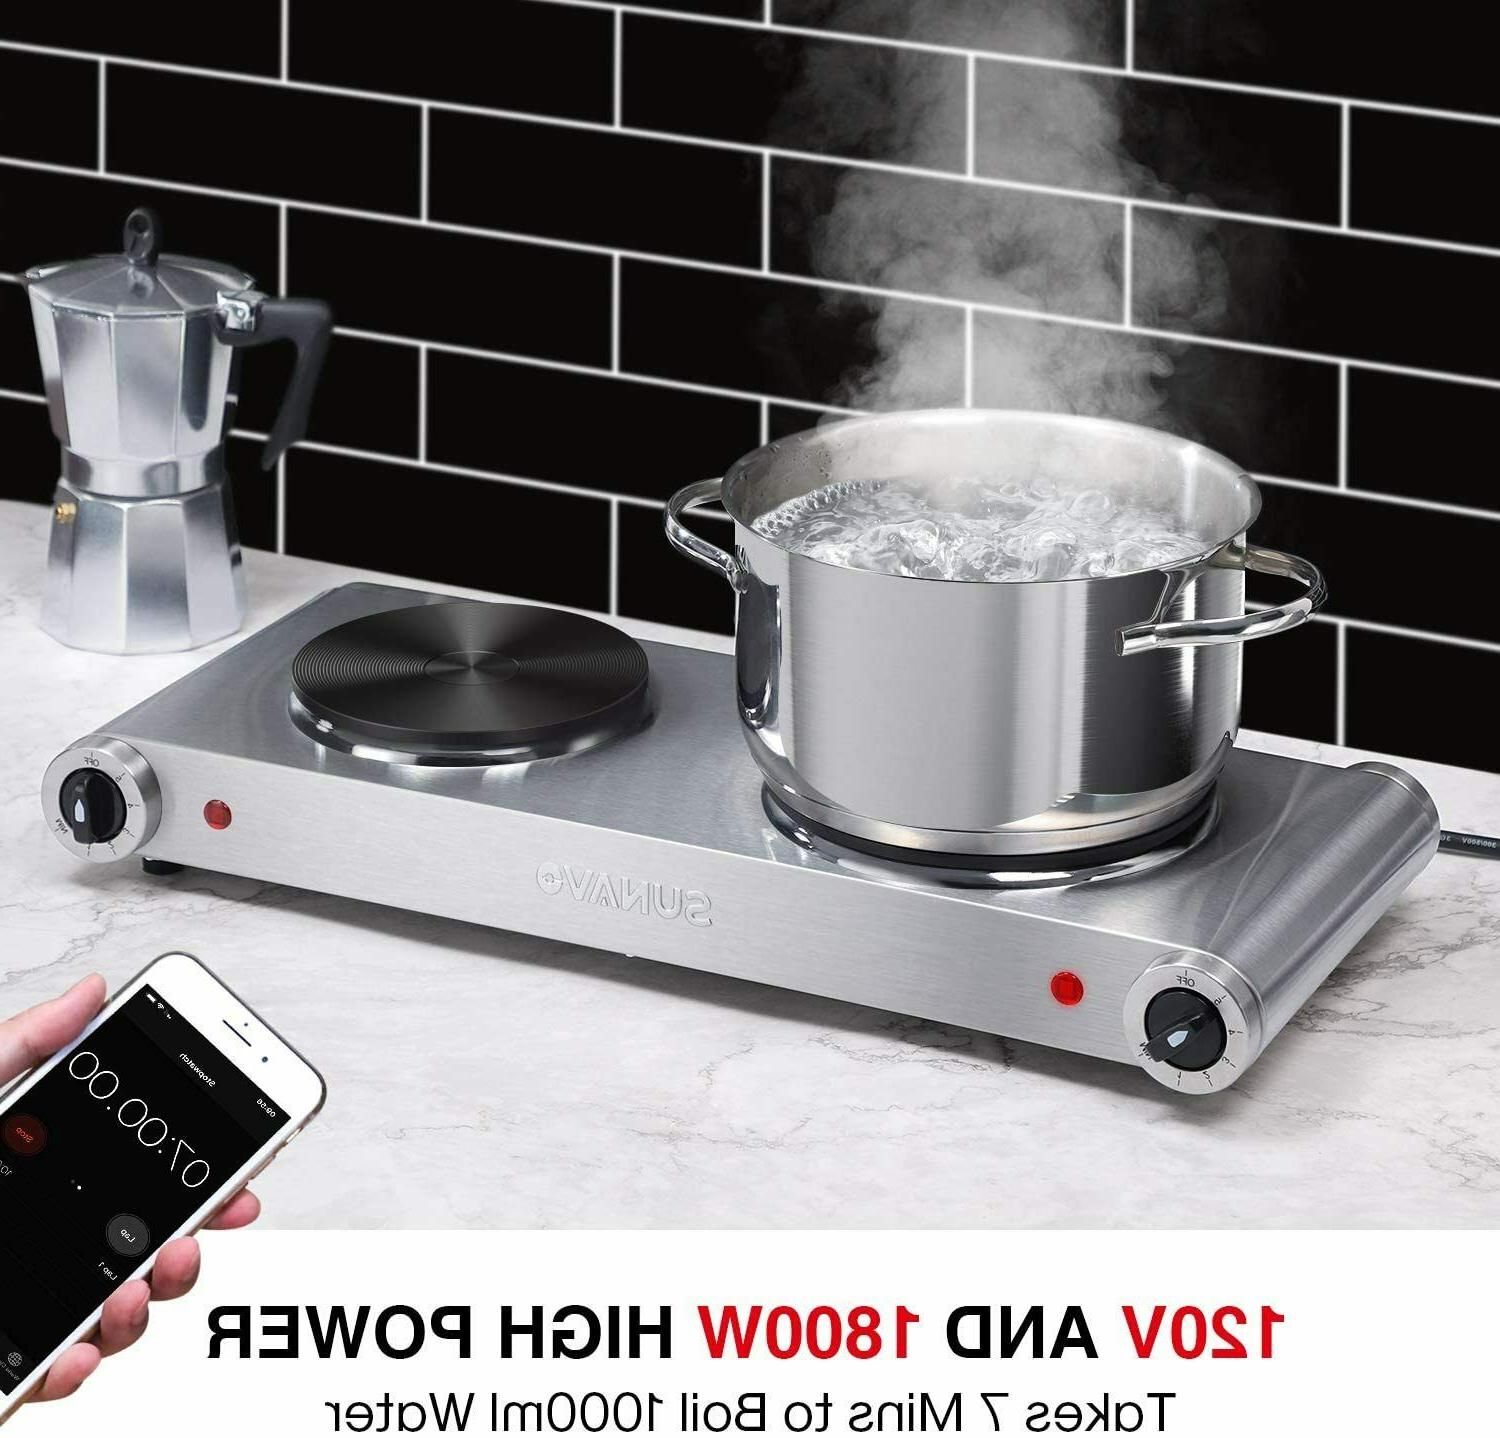 Hot Plates Cooking Portable Electric Double 1800W 5 Cast